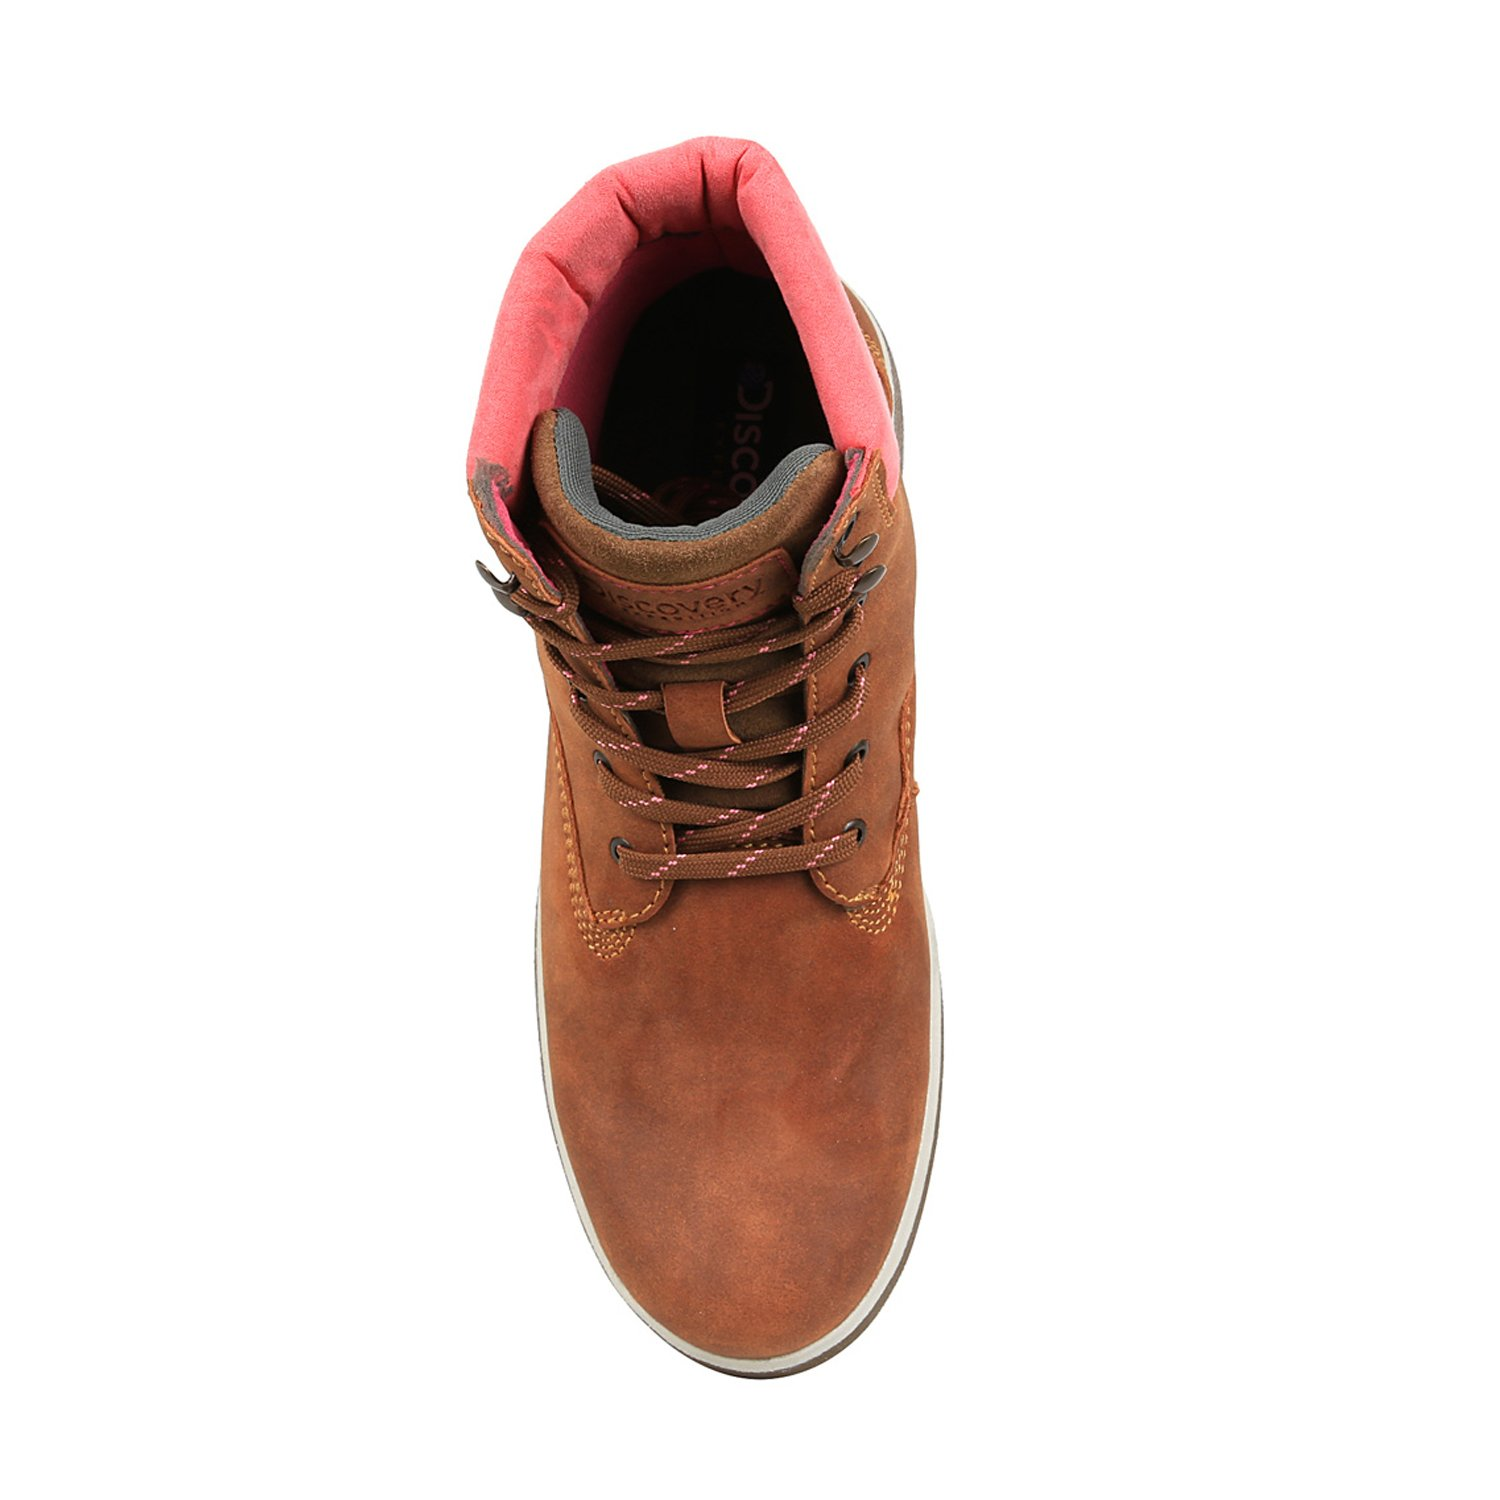 Discovery Expedition Women's Adventure High Top Lace up Hiking Boot Cinnamon Size 9.5 by Discovery Expedition (Image #5)